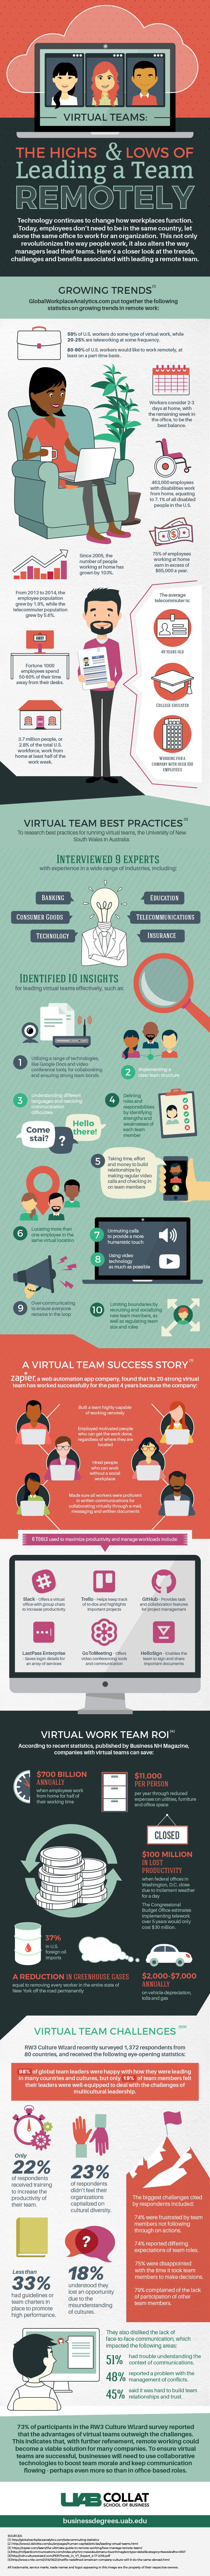 Cloud Collaboration infographic